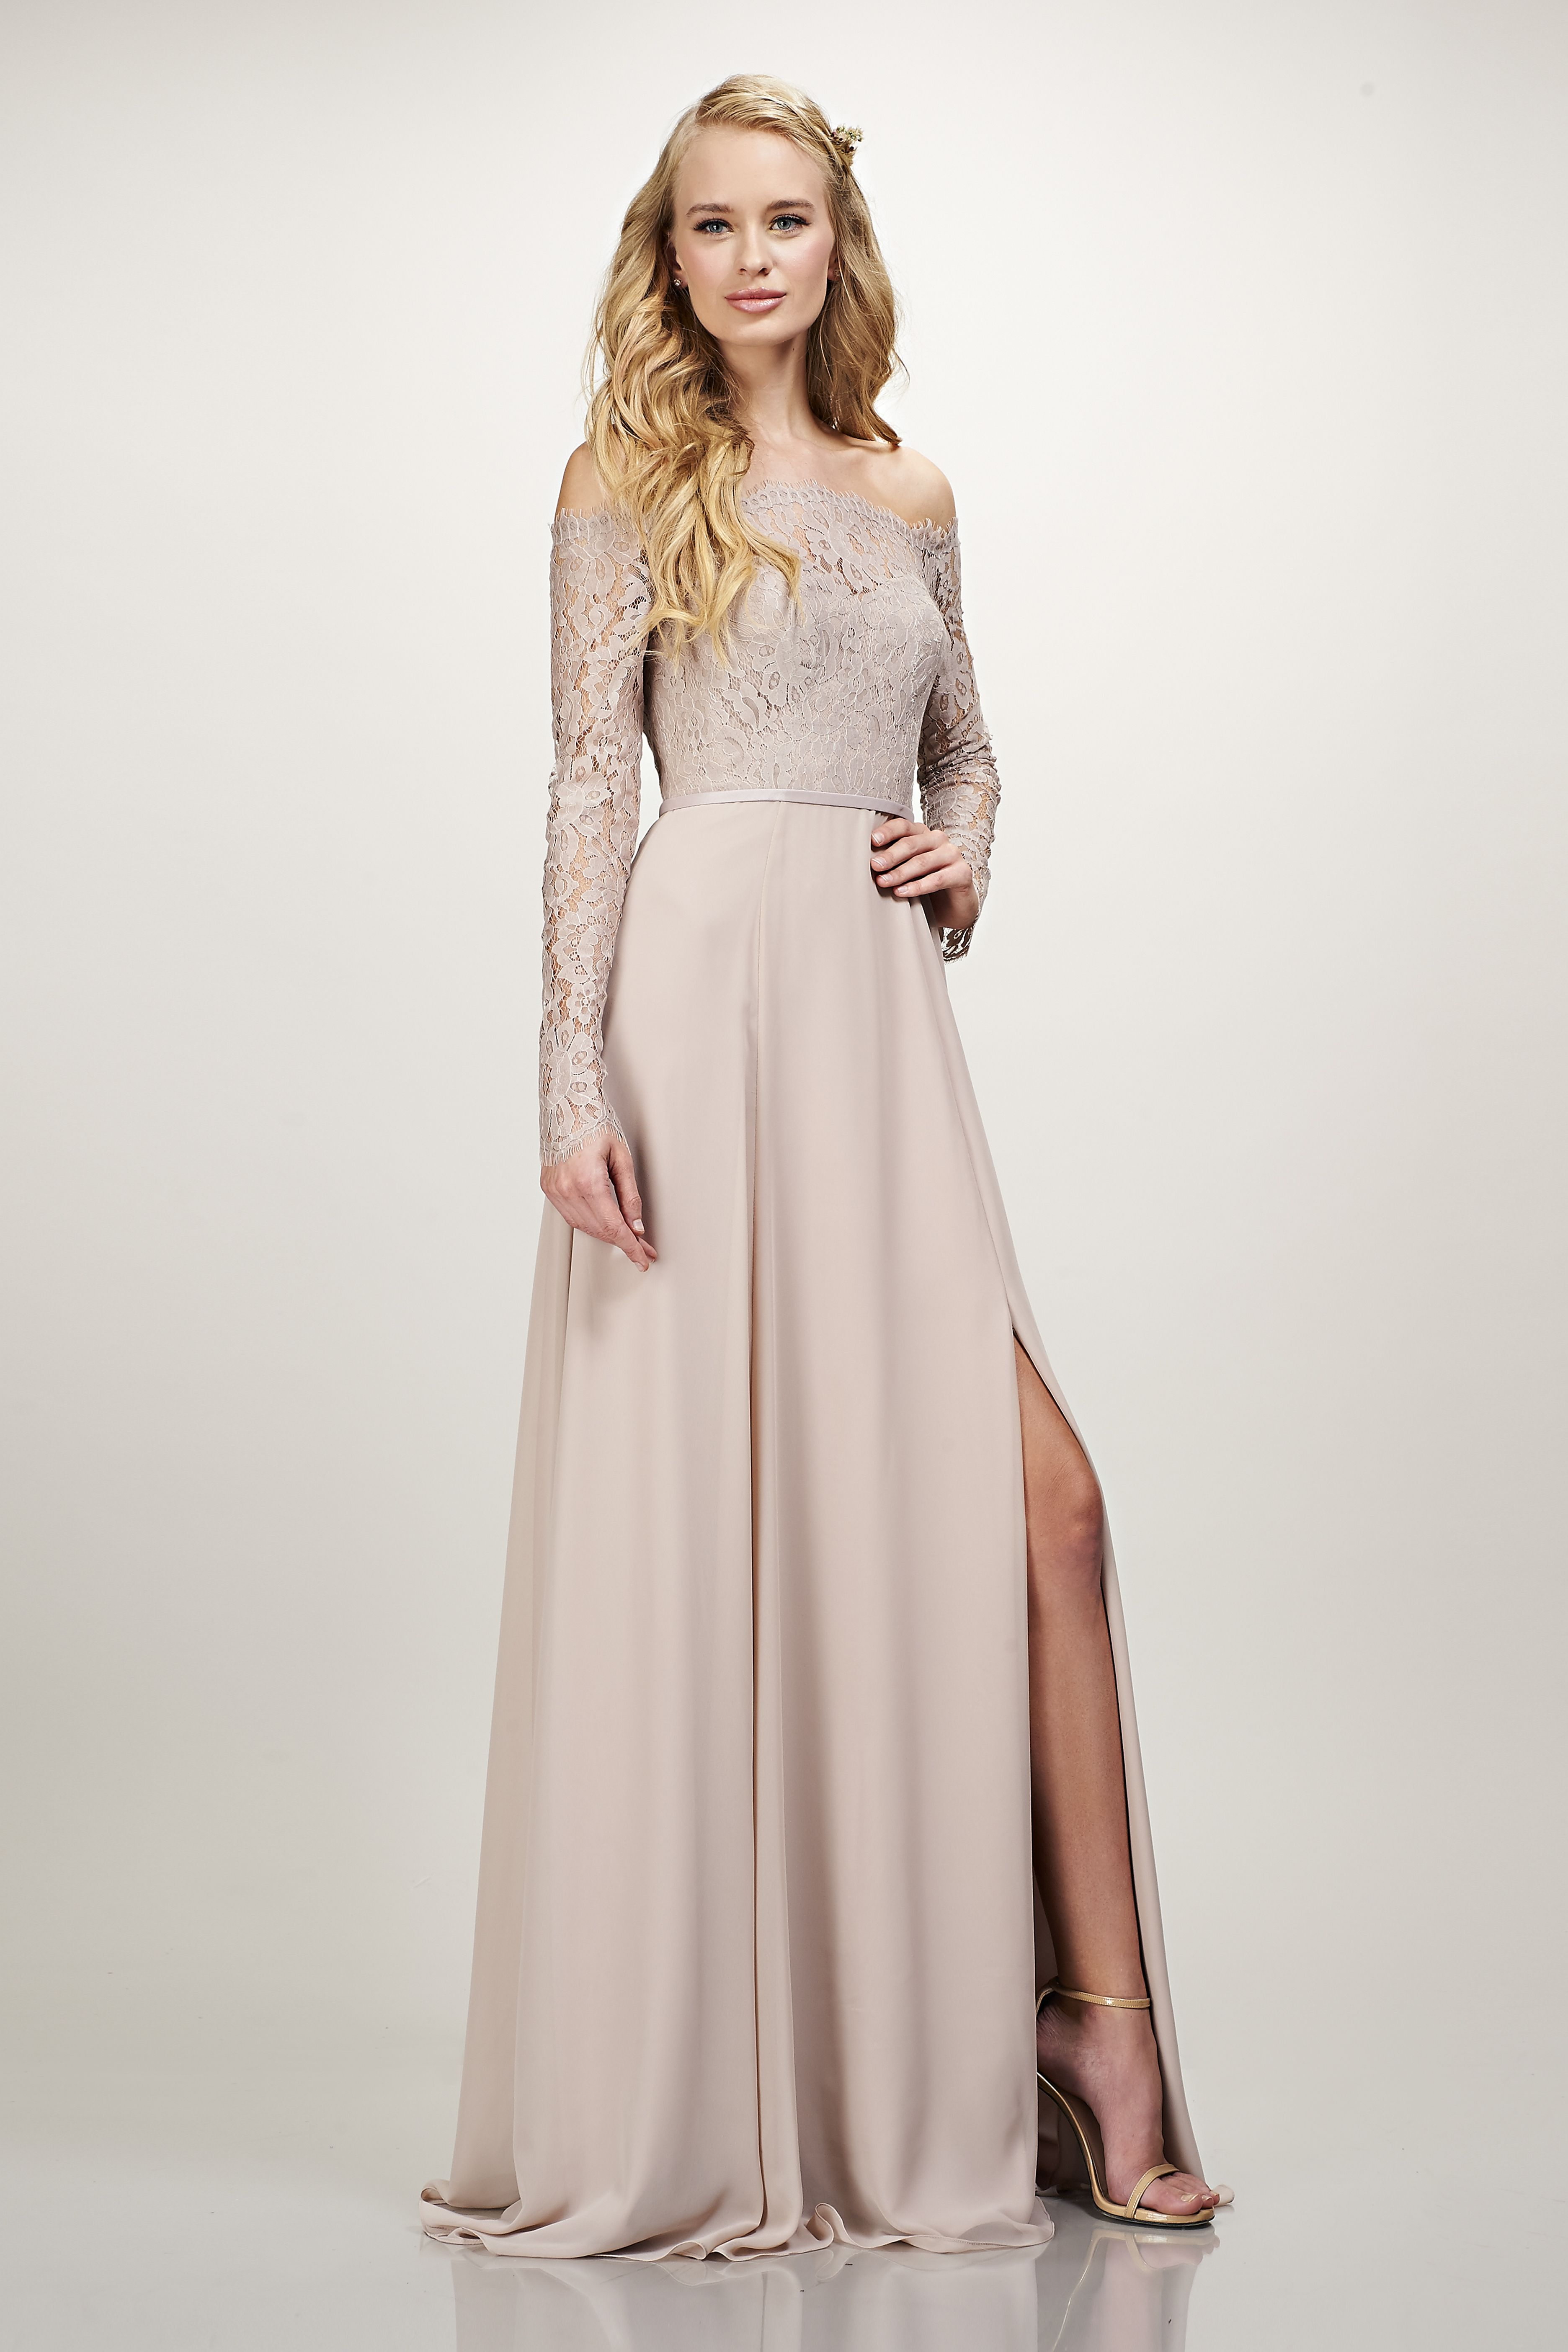 Isabel Theia Bridesmaid Dresses Neutral Bridesmaid Dresses Long Sleeve Bridesmaid Dress [ 5616 x 3744 Pixel ]